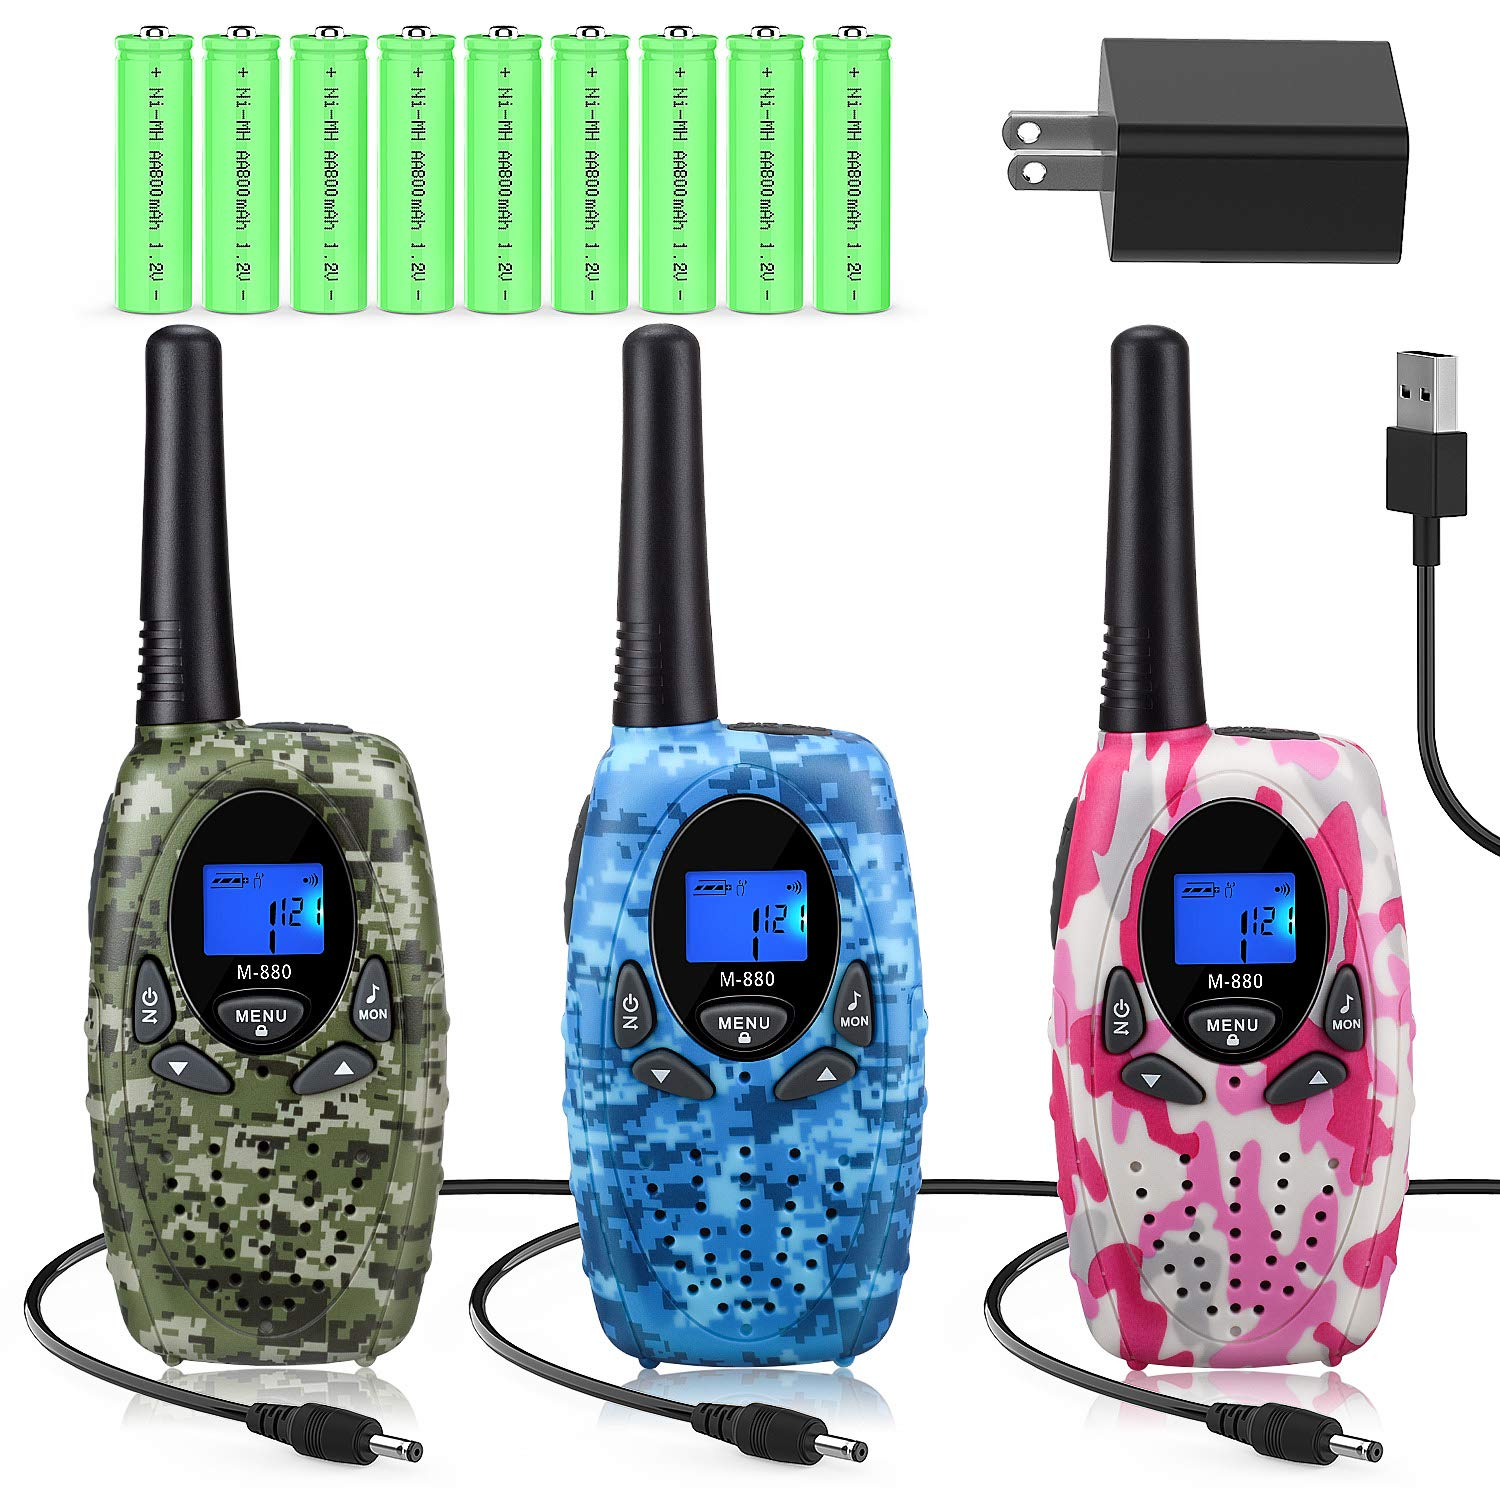 Topsung 3 Walkie Talkies Rechargeable for Adults, M880 FRS Rechargeable Two Way Radios Long Range with Charger Batteries, Upgraded Version Portable Walky Talky for Camping (Camo Blue Green Pink)